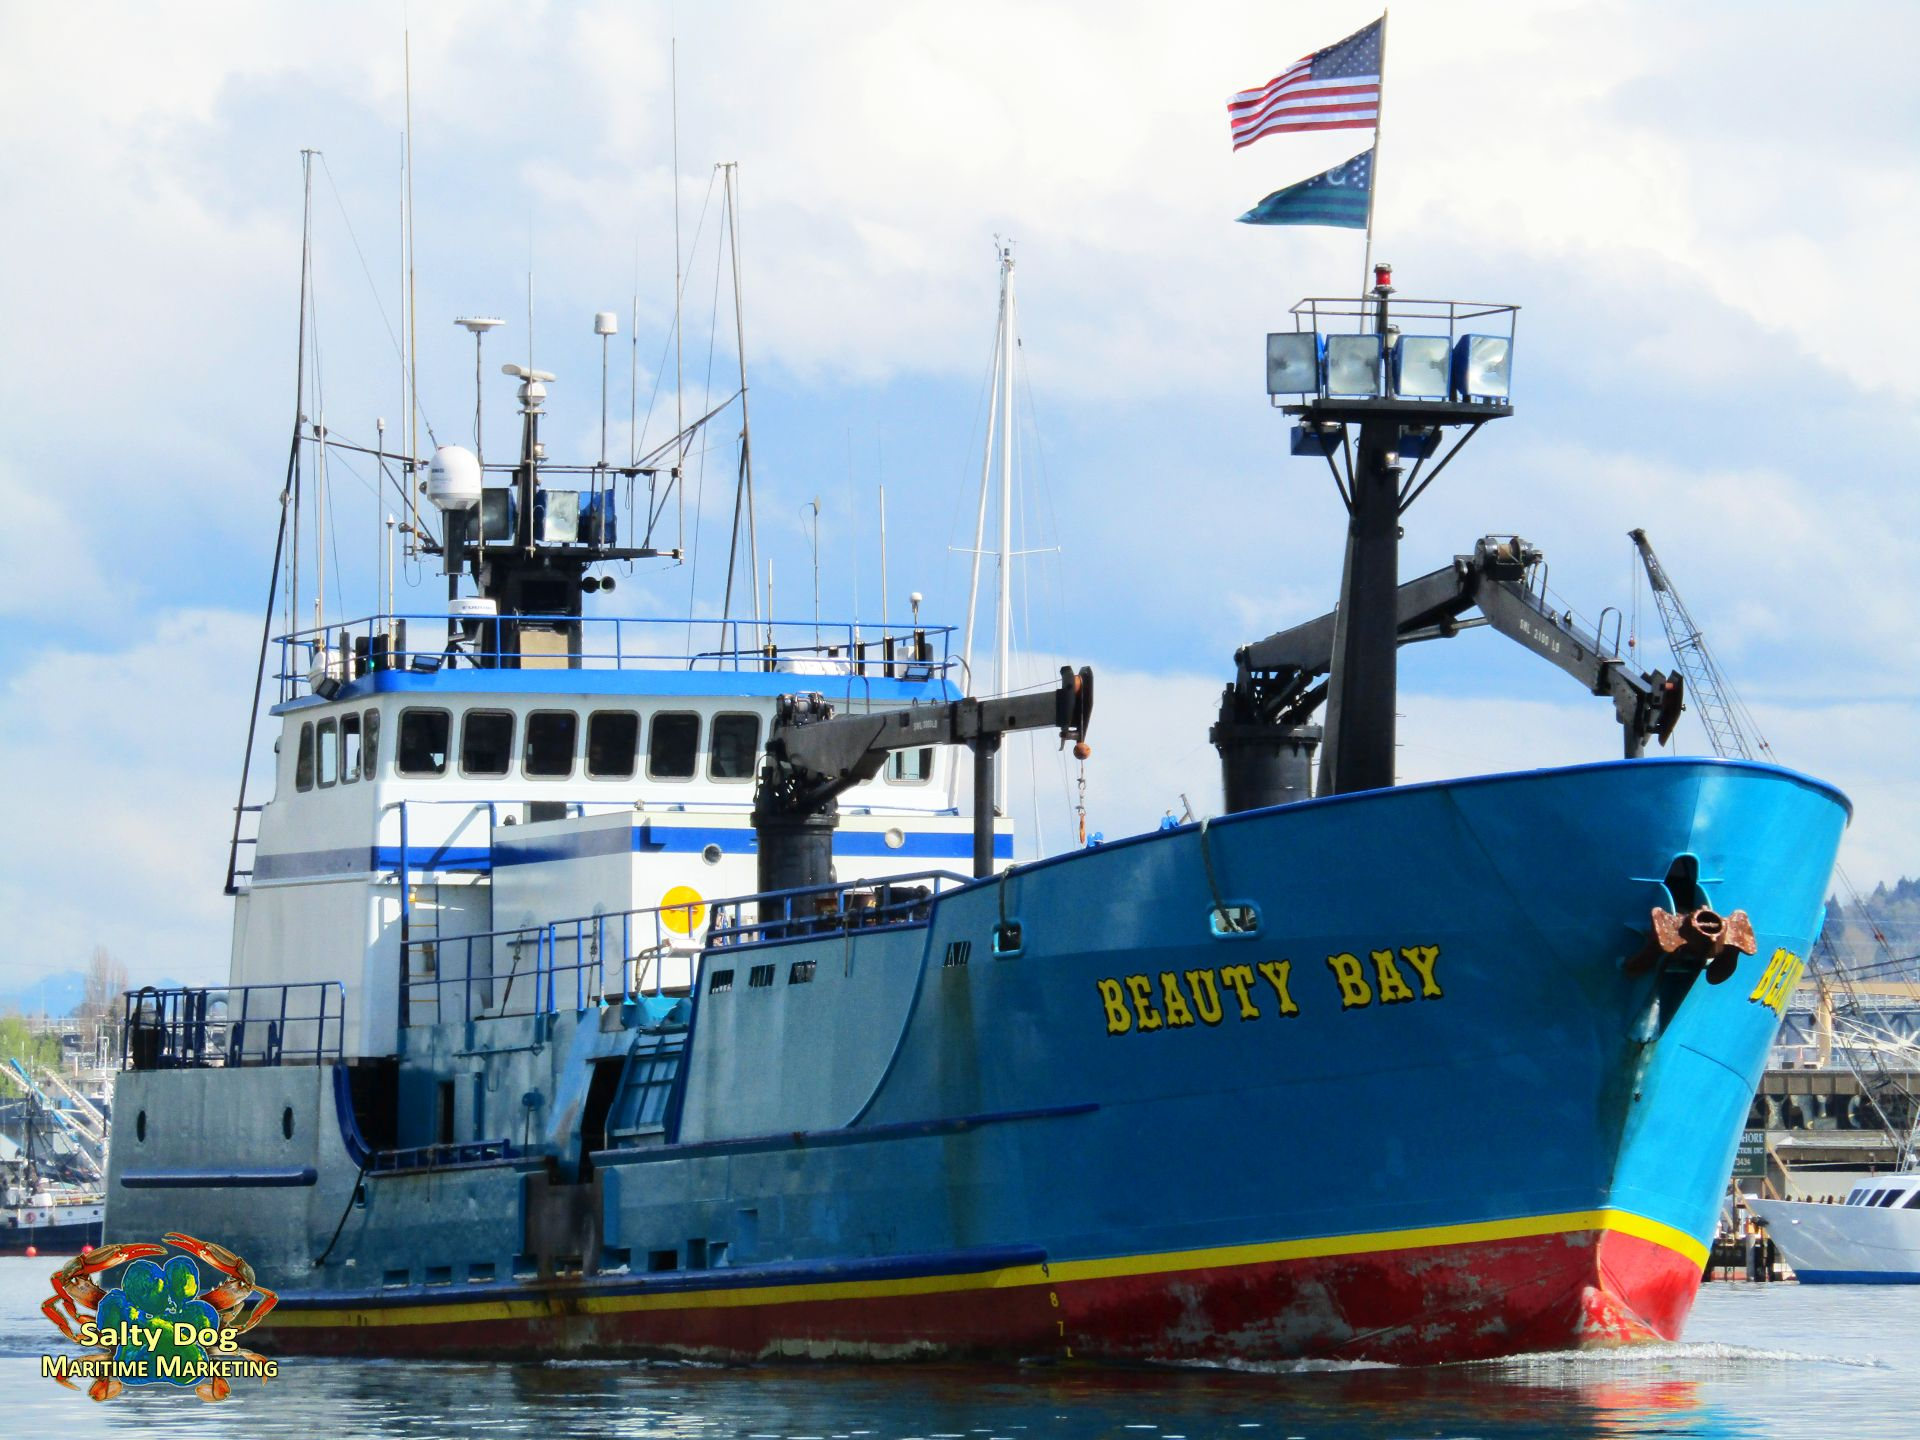 AK Commercial Fishing Boats, AK Crabbers, Gillnetters, Seiners, Draggers